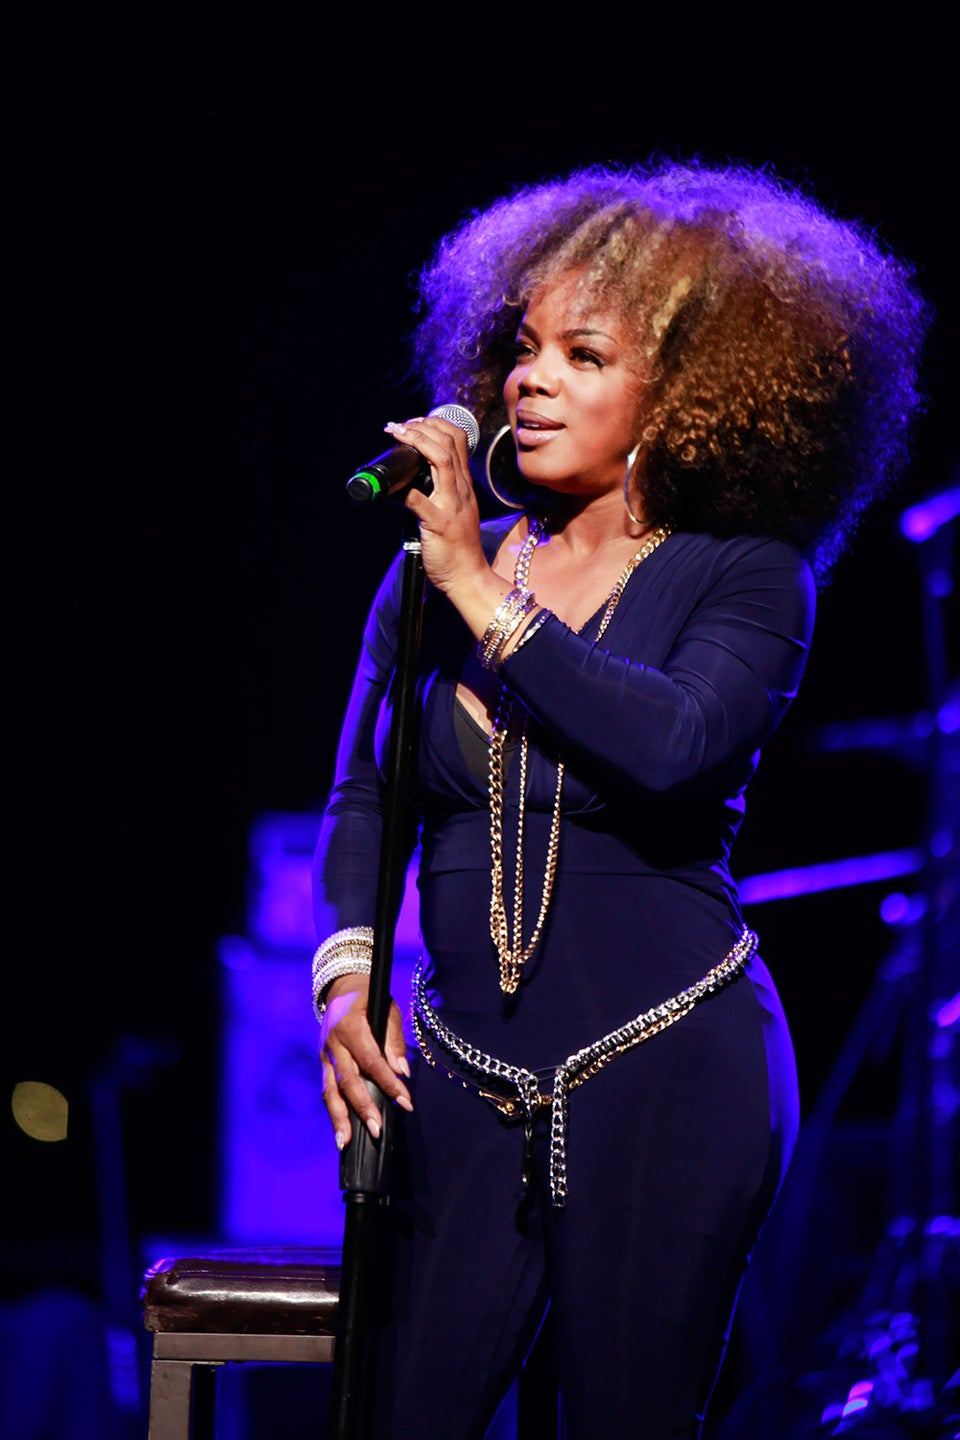 Leela James Talks New Season of R&B Divas, Supporting Her Friend's Battle With Cancer and Ledisi/Grammy's Controversy